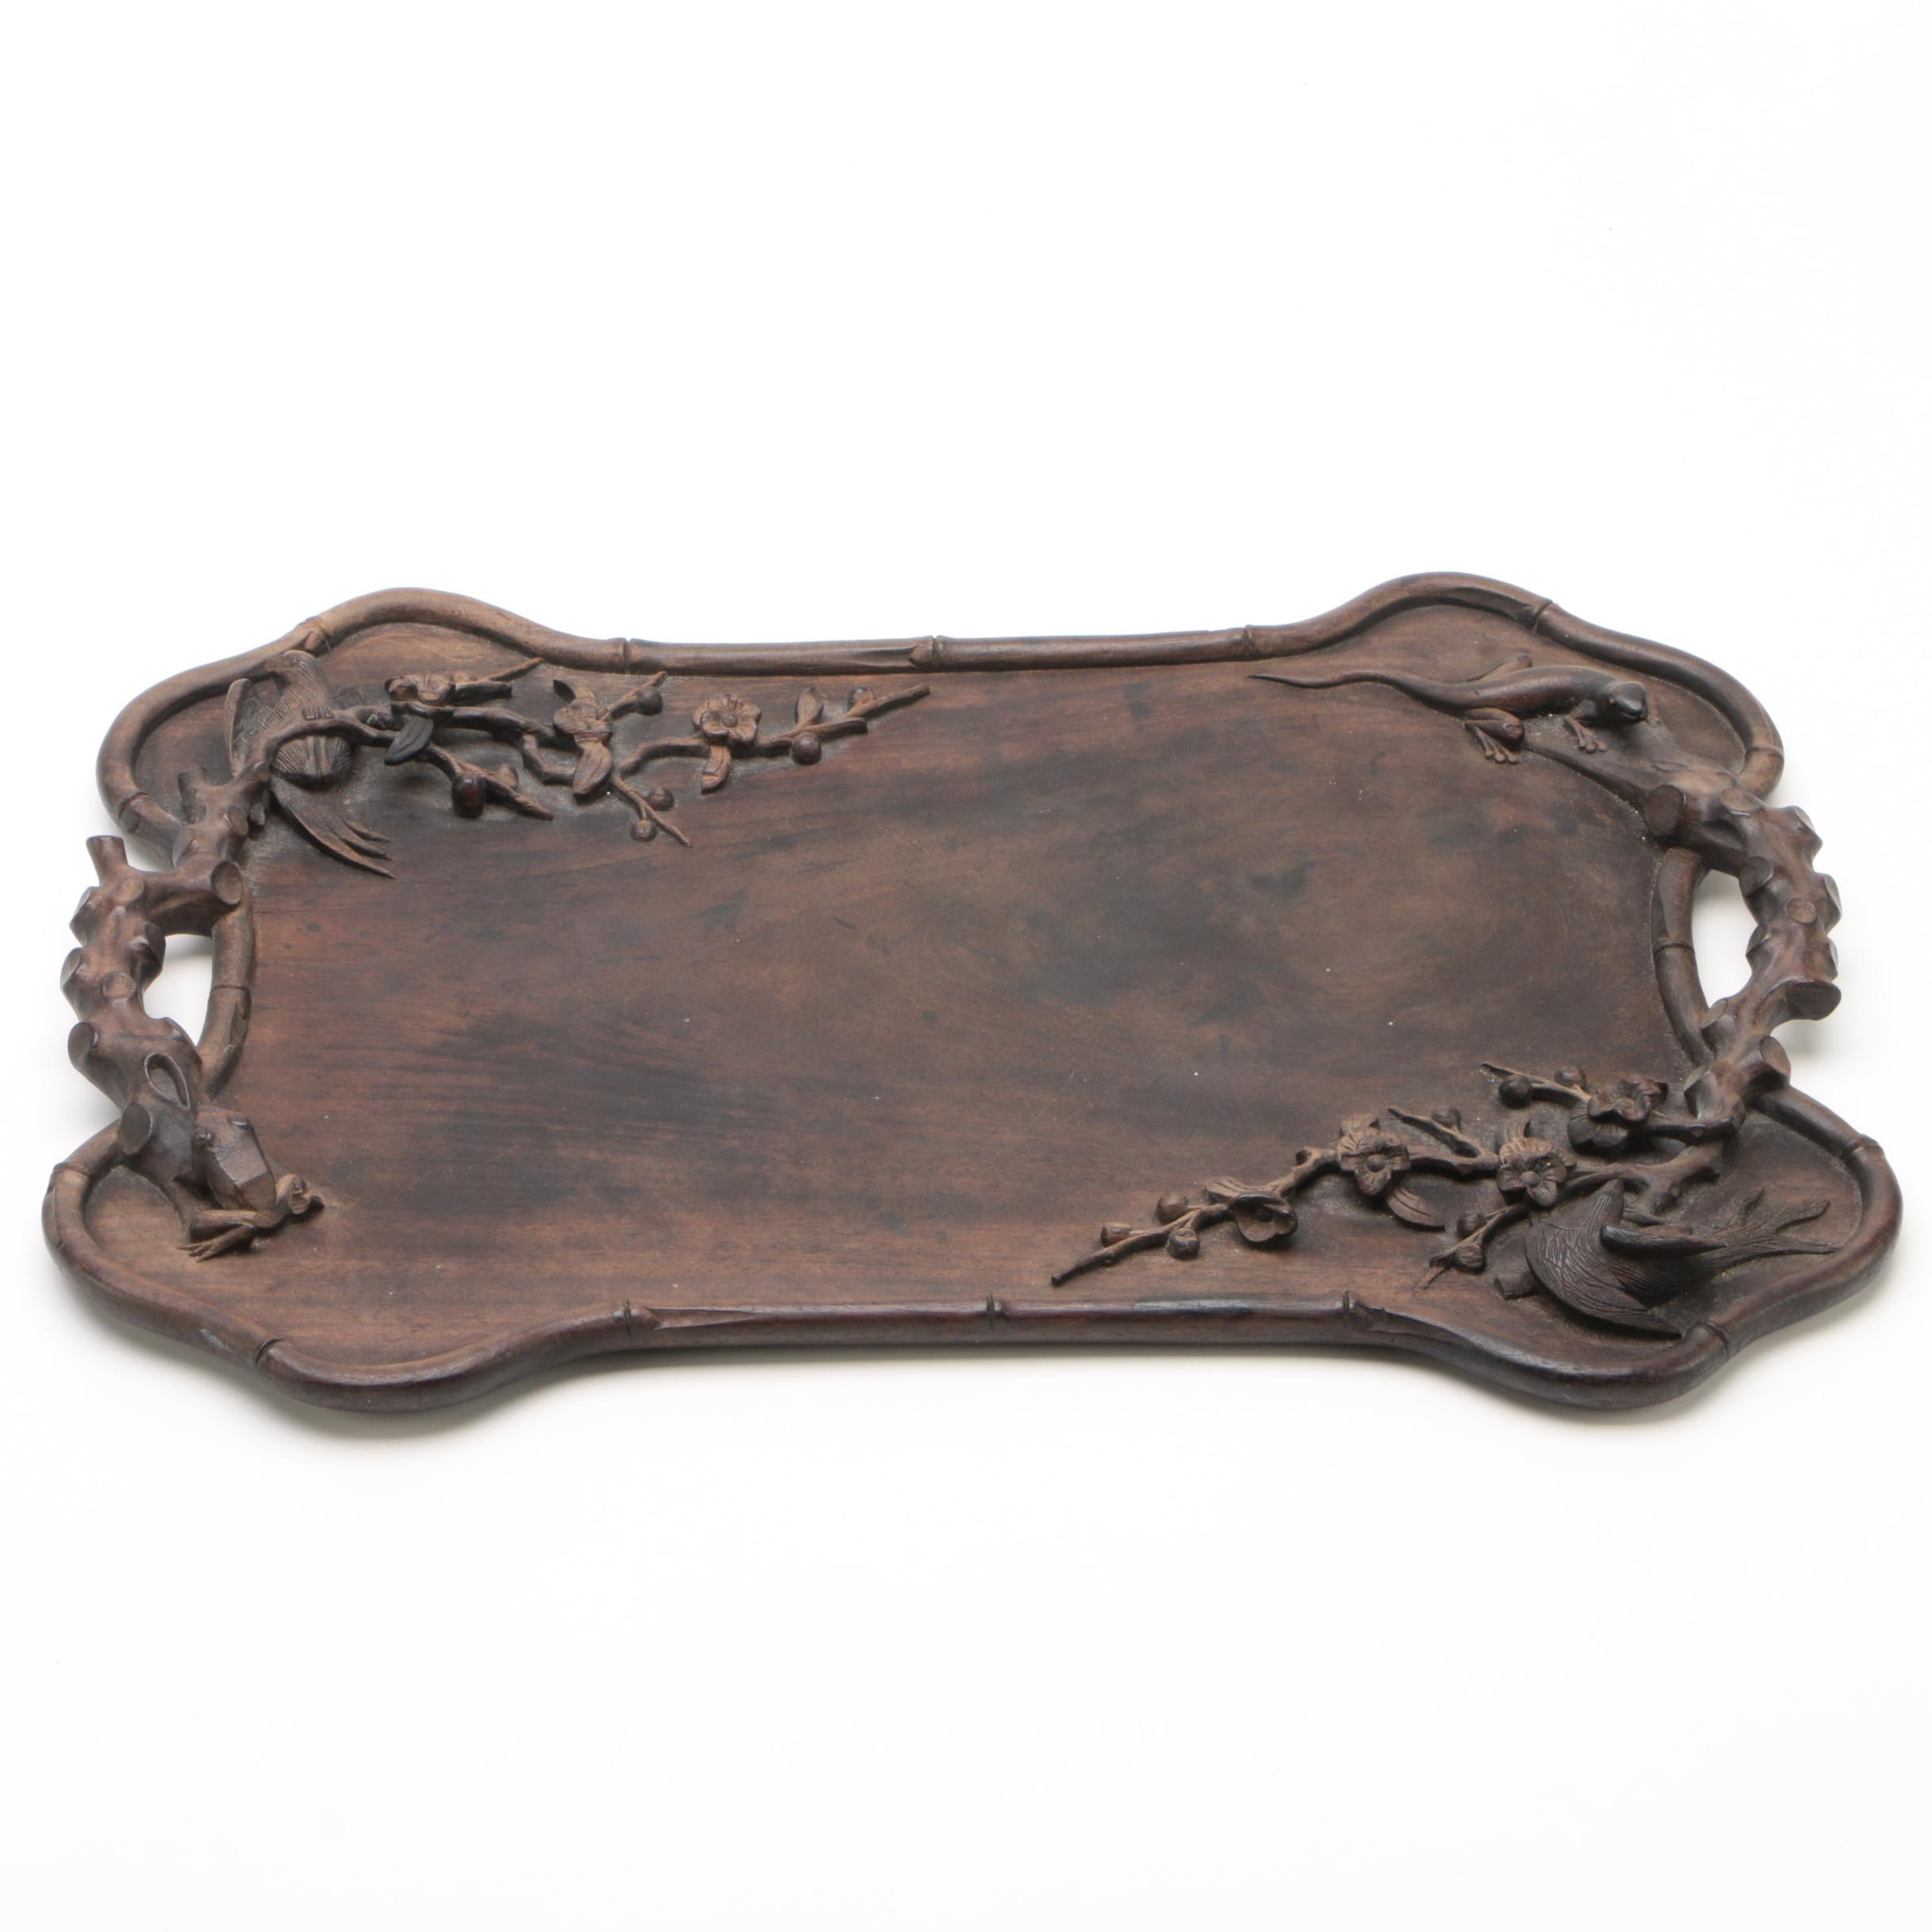 Art Carved Teak Wood Tray with Bird and Frog Motifs, Early 20th Century